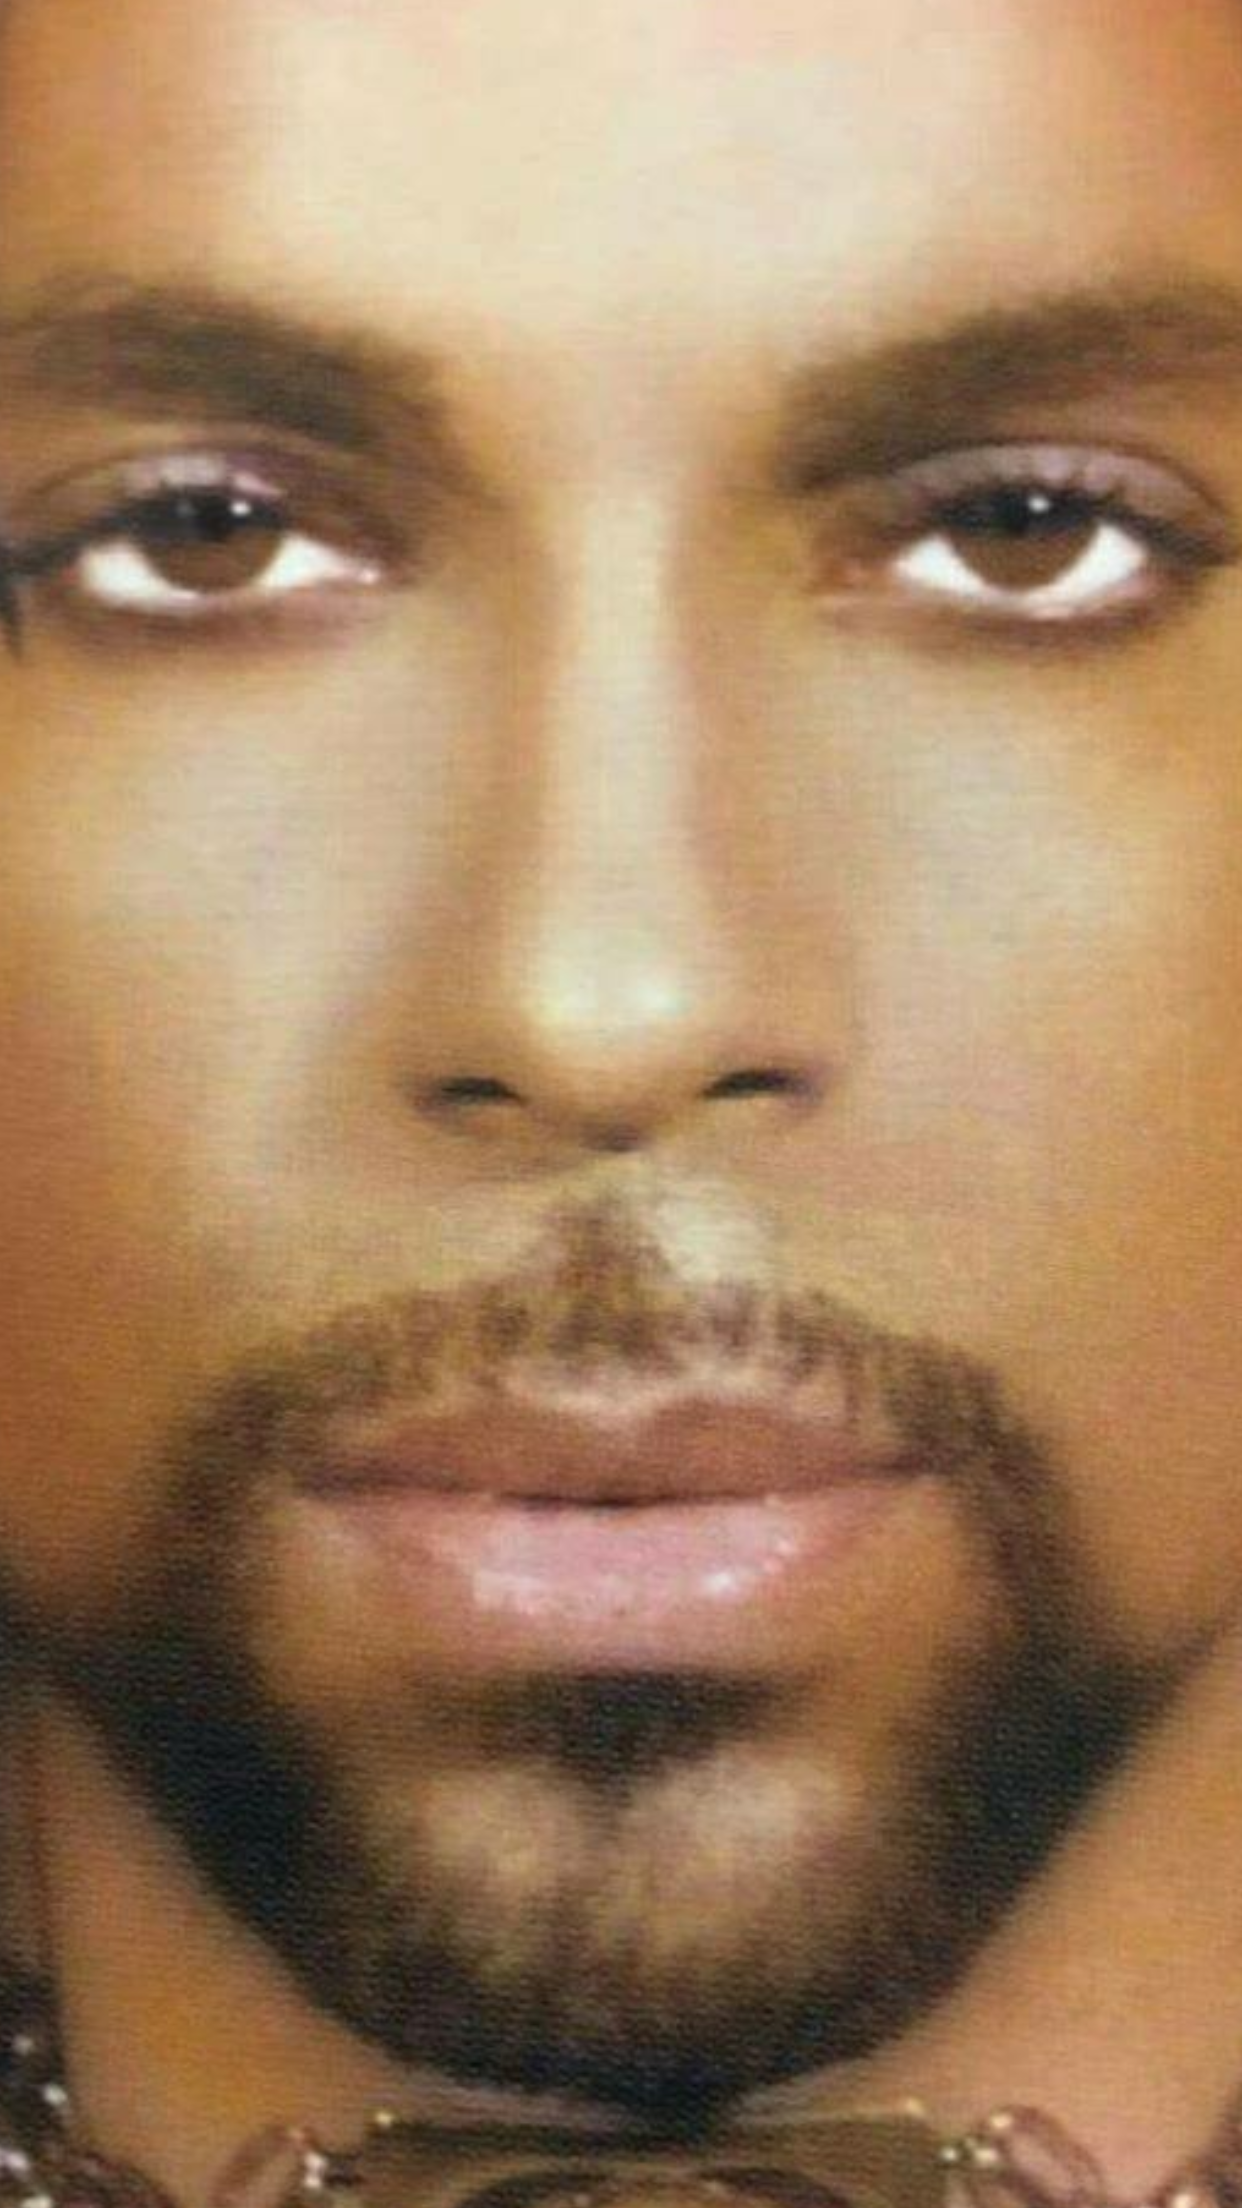 HORNY BEDROOM EYES | LOVE PRINCE | Pinterest | Bedroom eyes, Roger ...